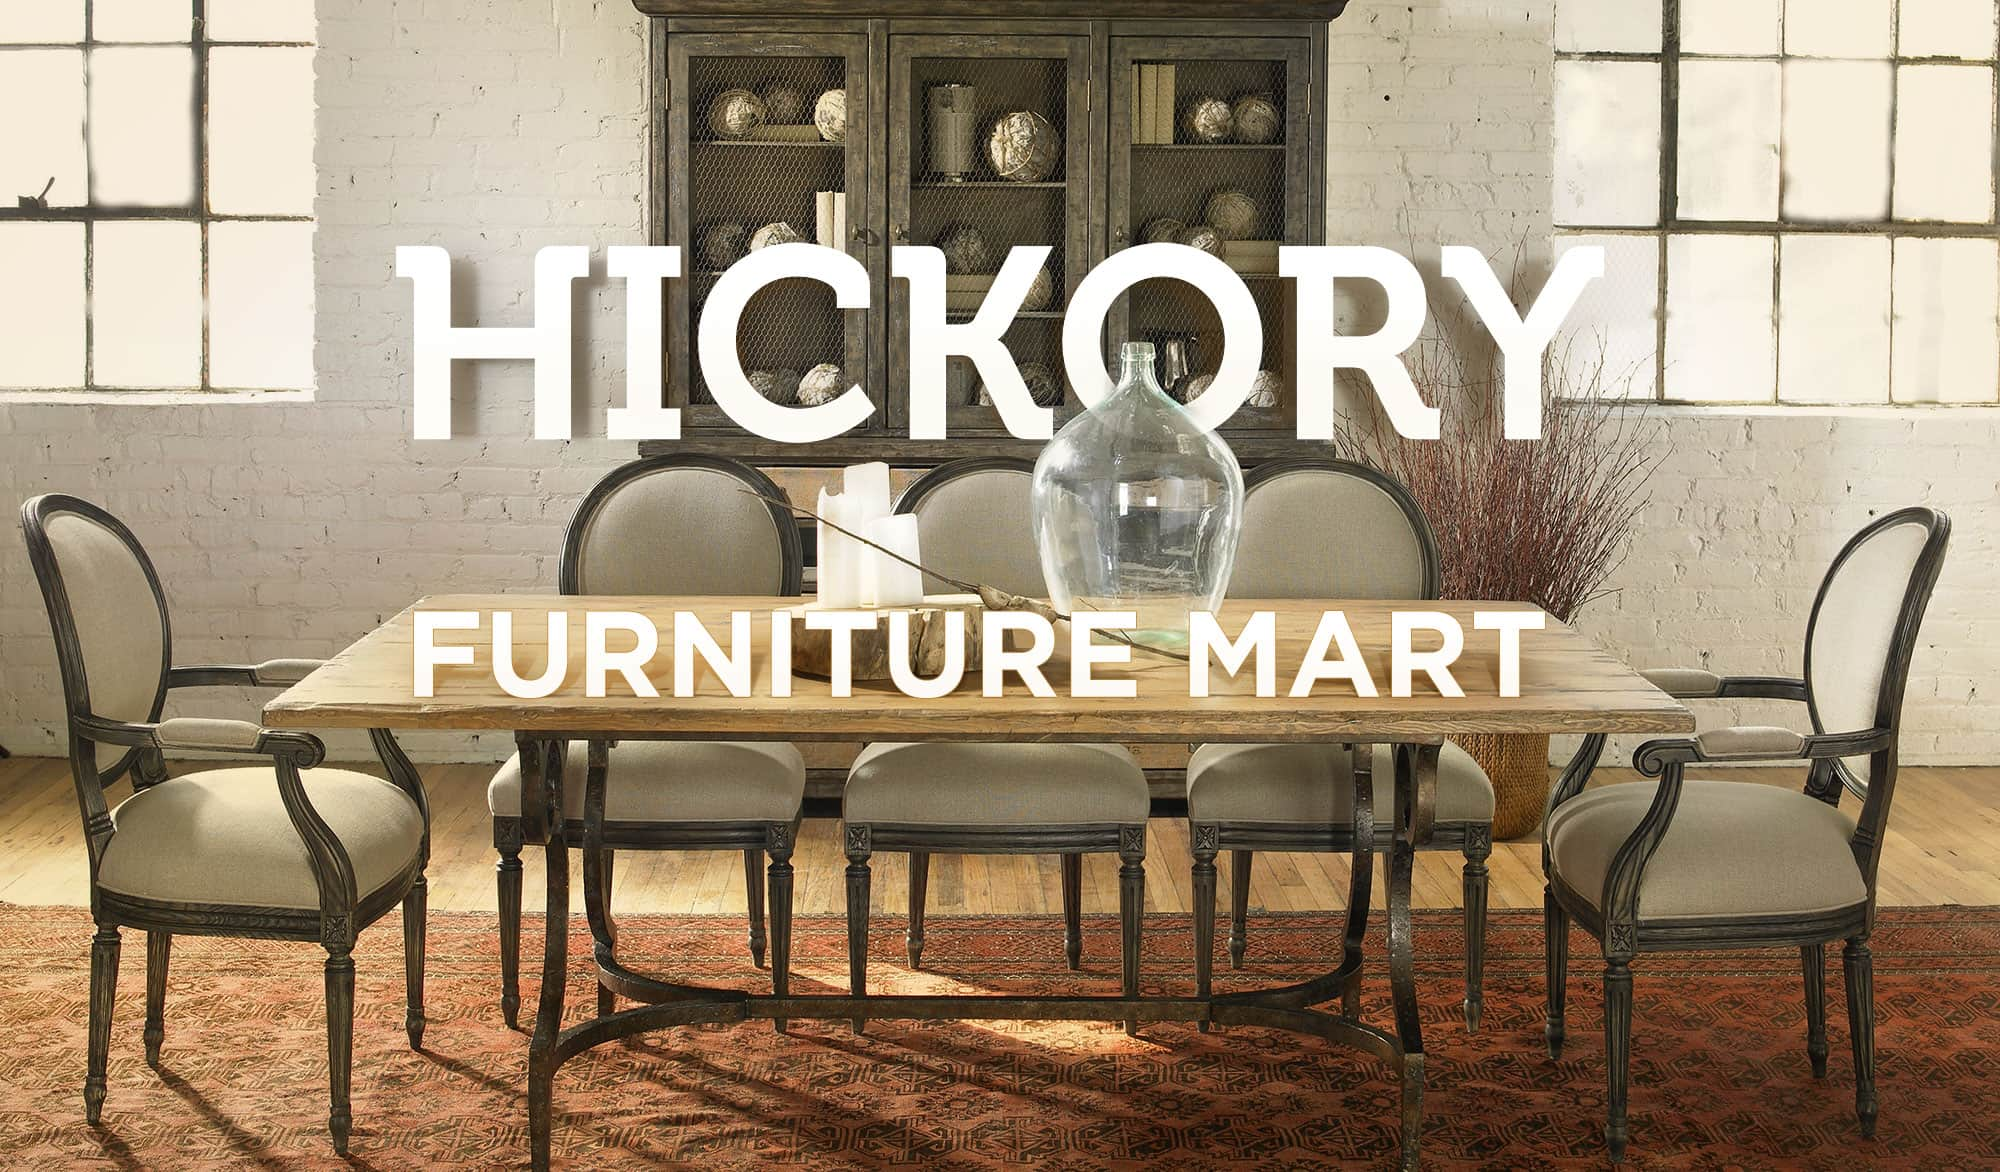 Hickory Furniture Mart Furniture Store In Hickory N C Project 543